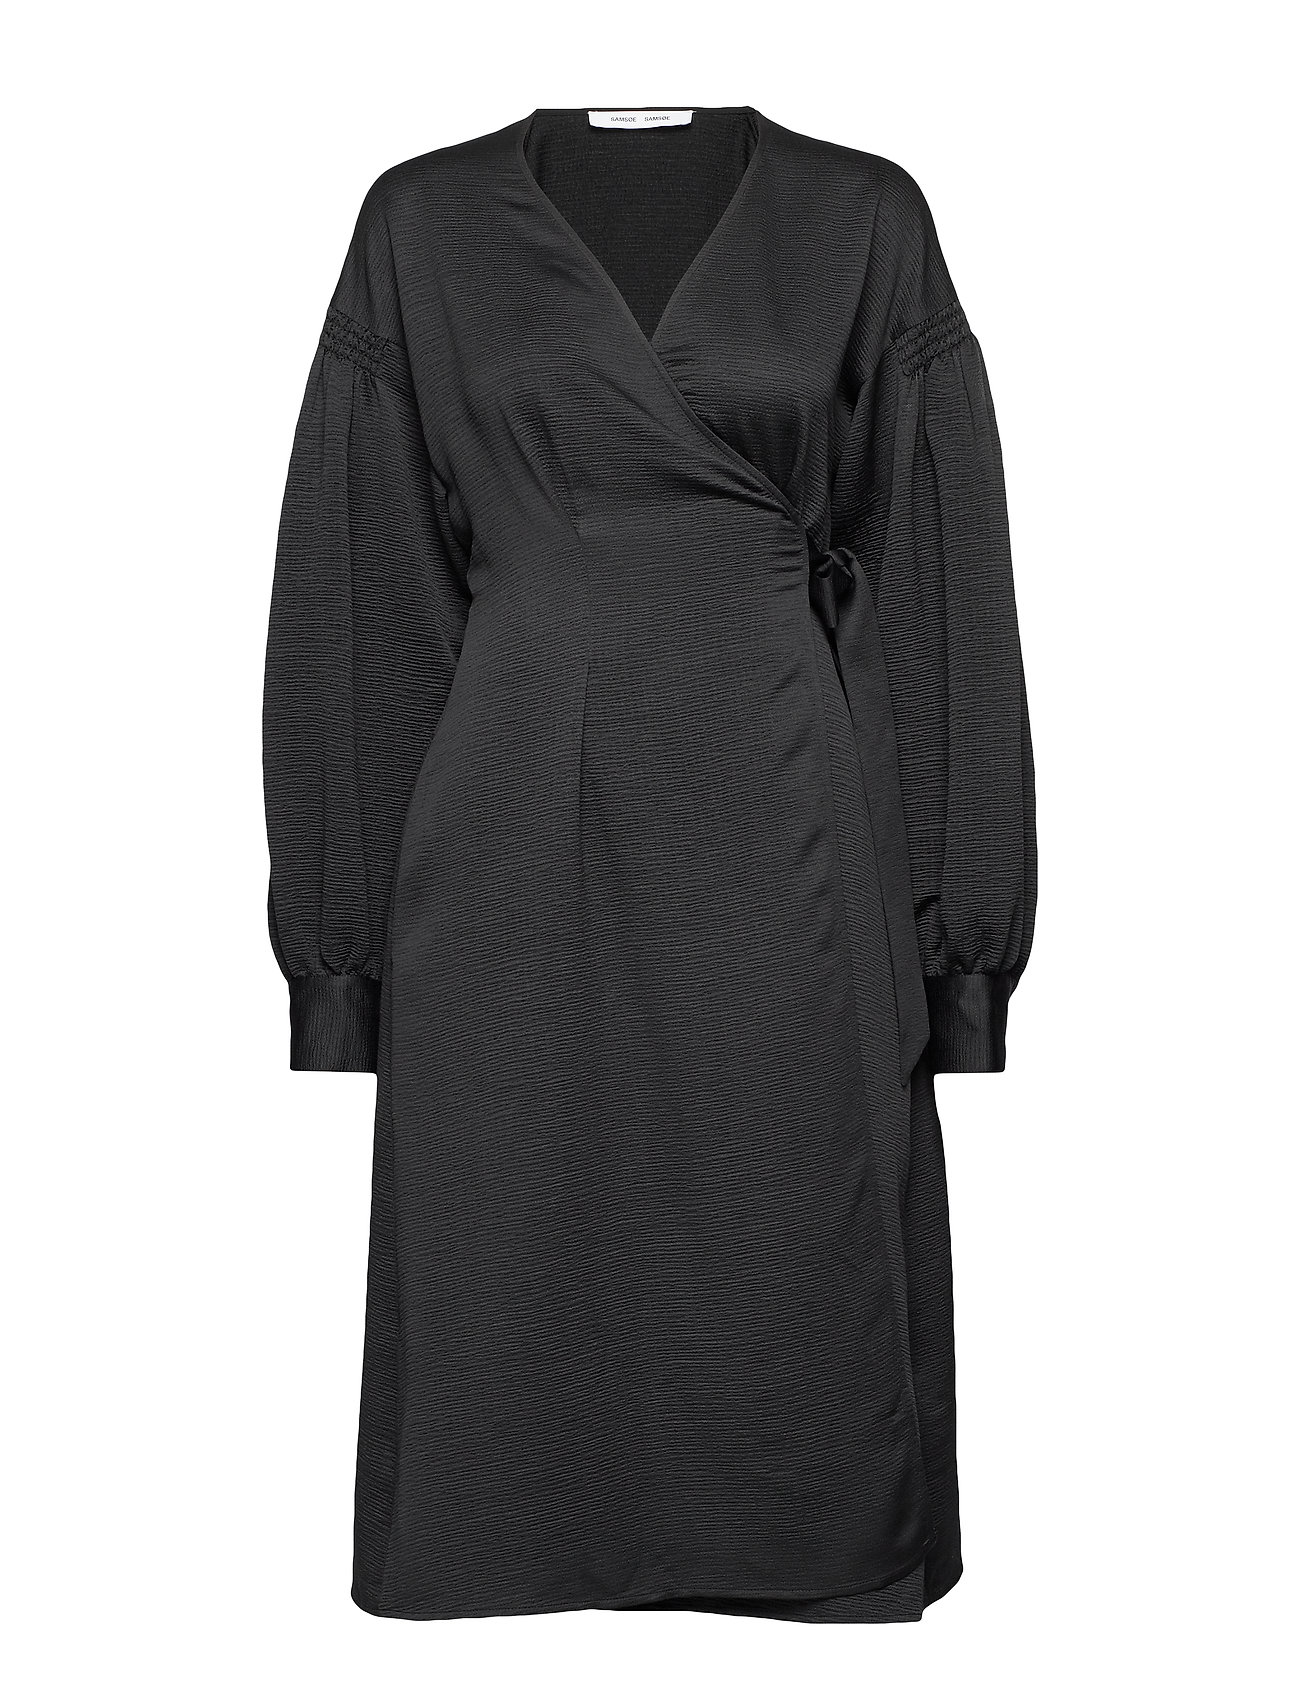 Samsøe & Samsøe Merrill dress 11242 - BLACK